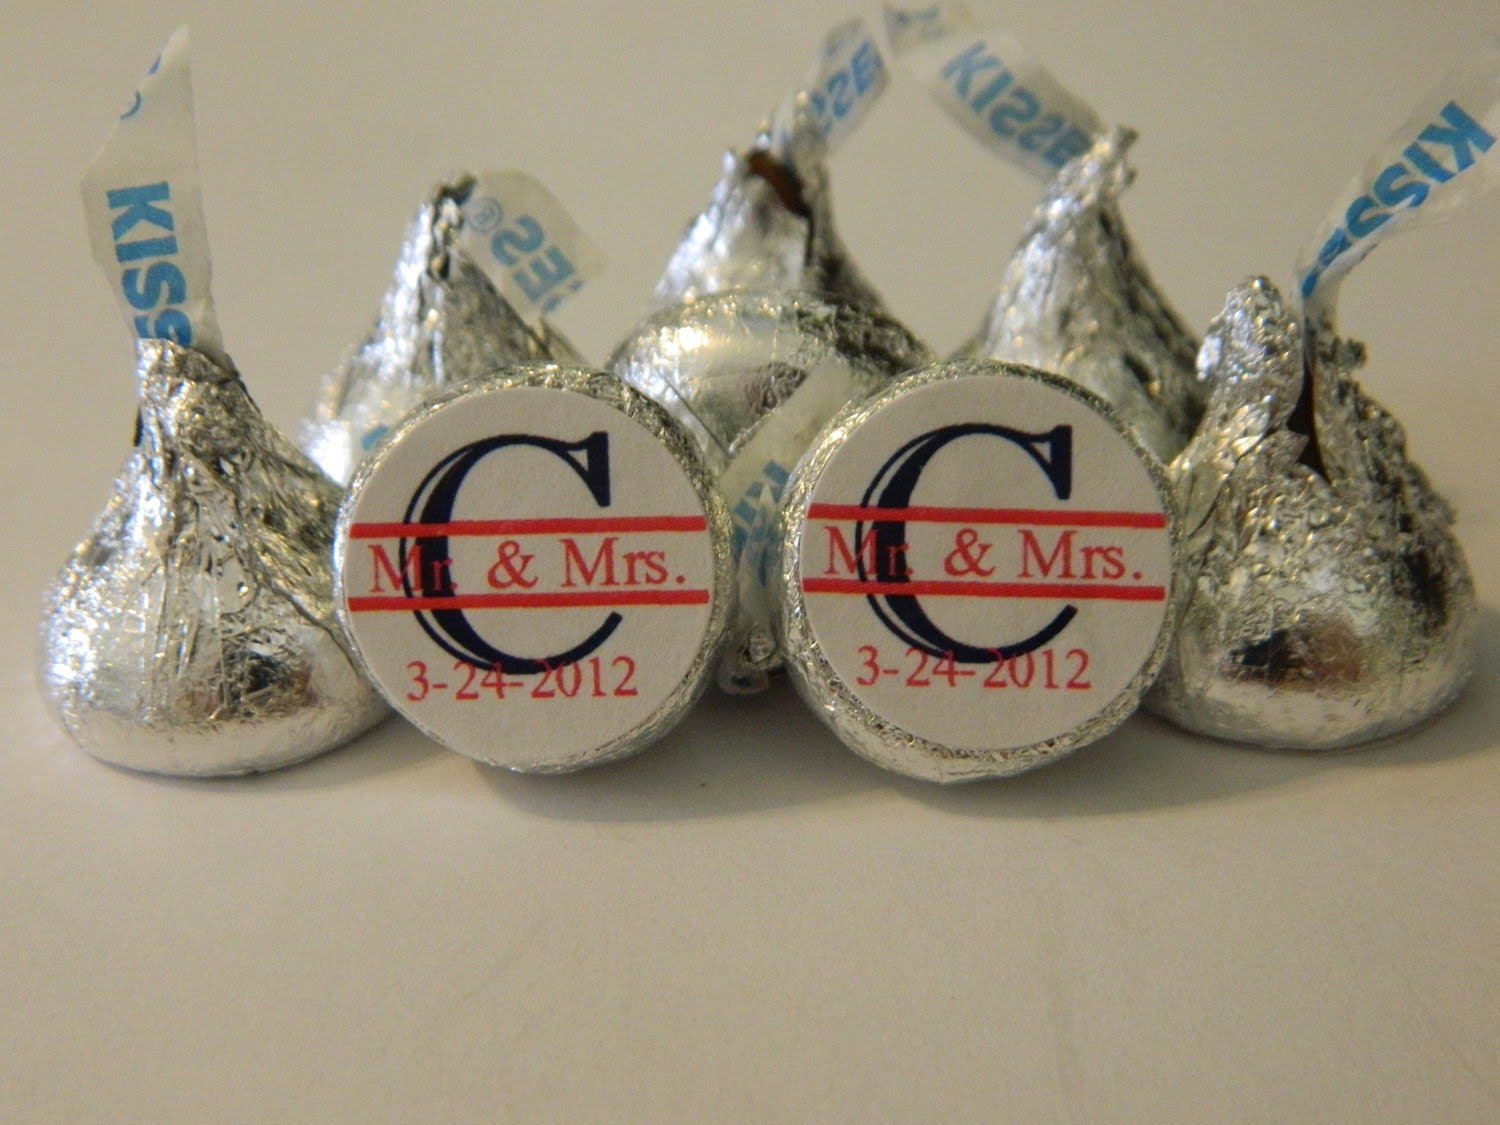 WEDDING INITIAL KISSES - Hershey Kisses - 108 self-advesive stickers - Labels Only - Personalized favors wedding favors